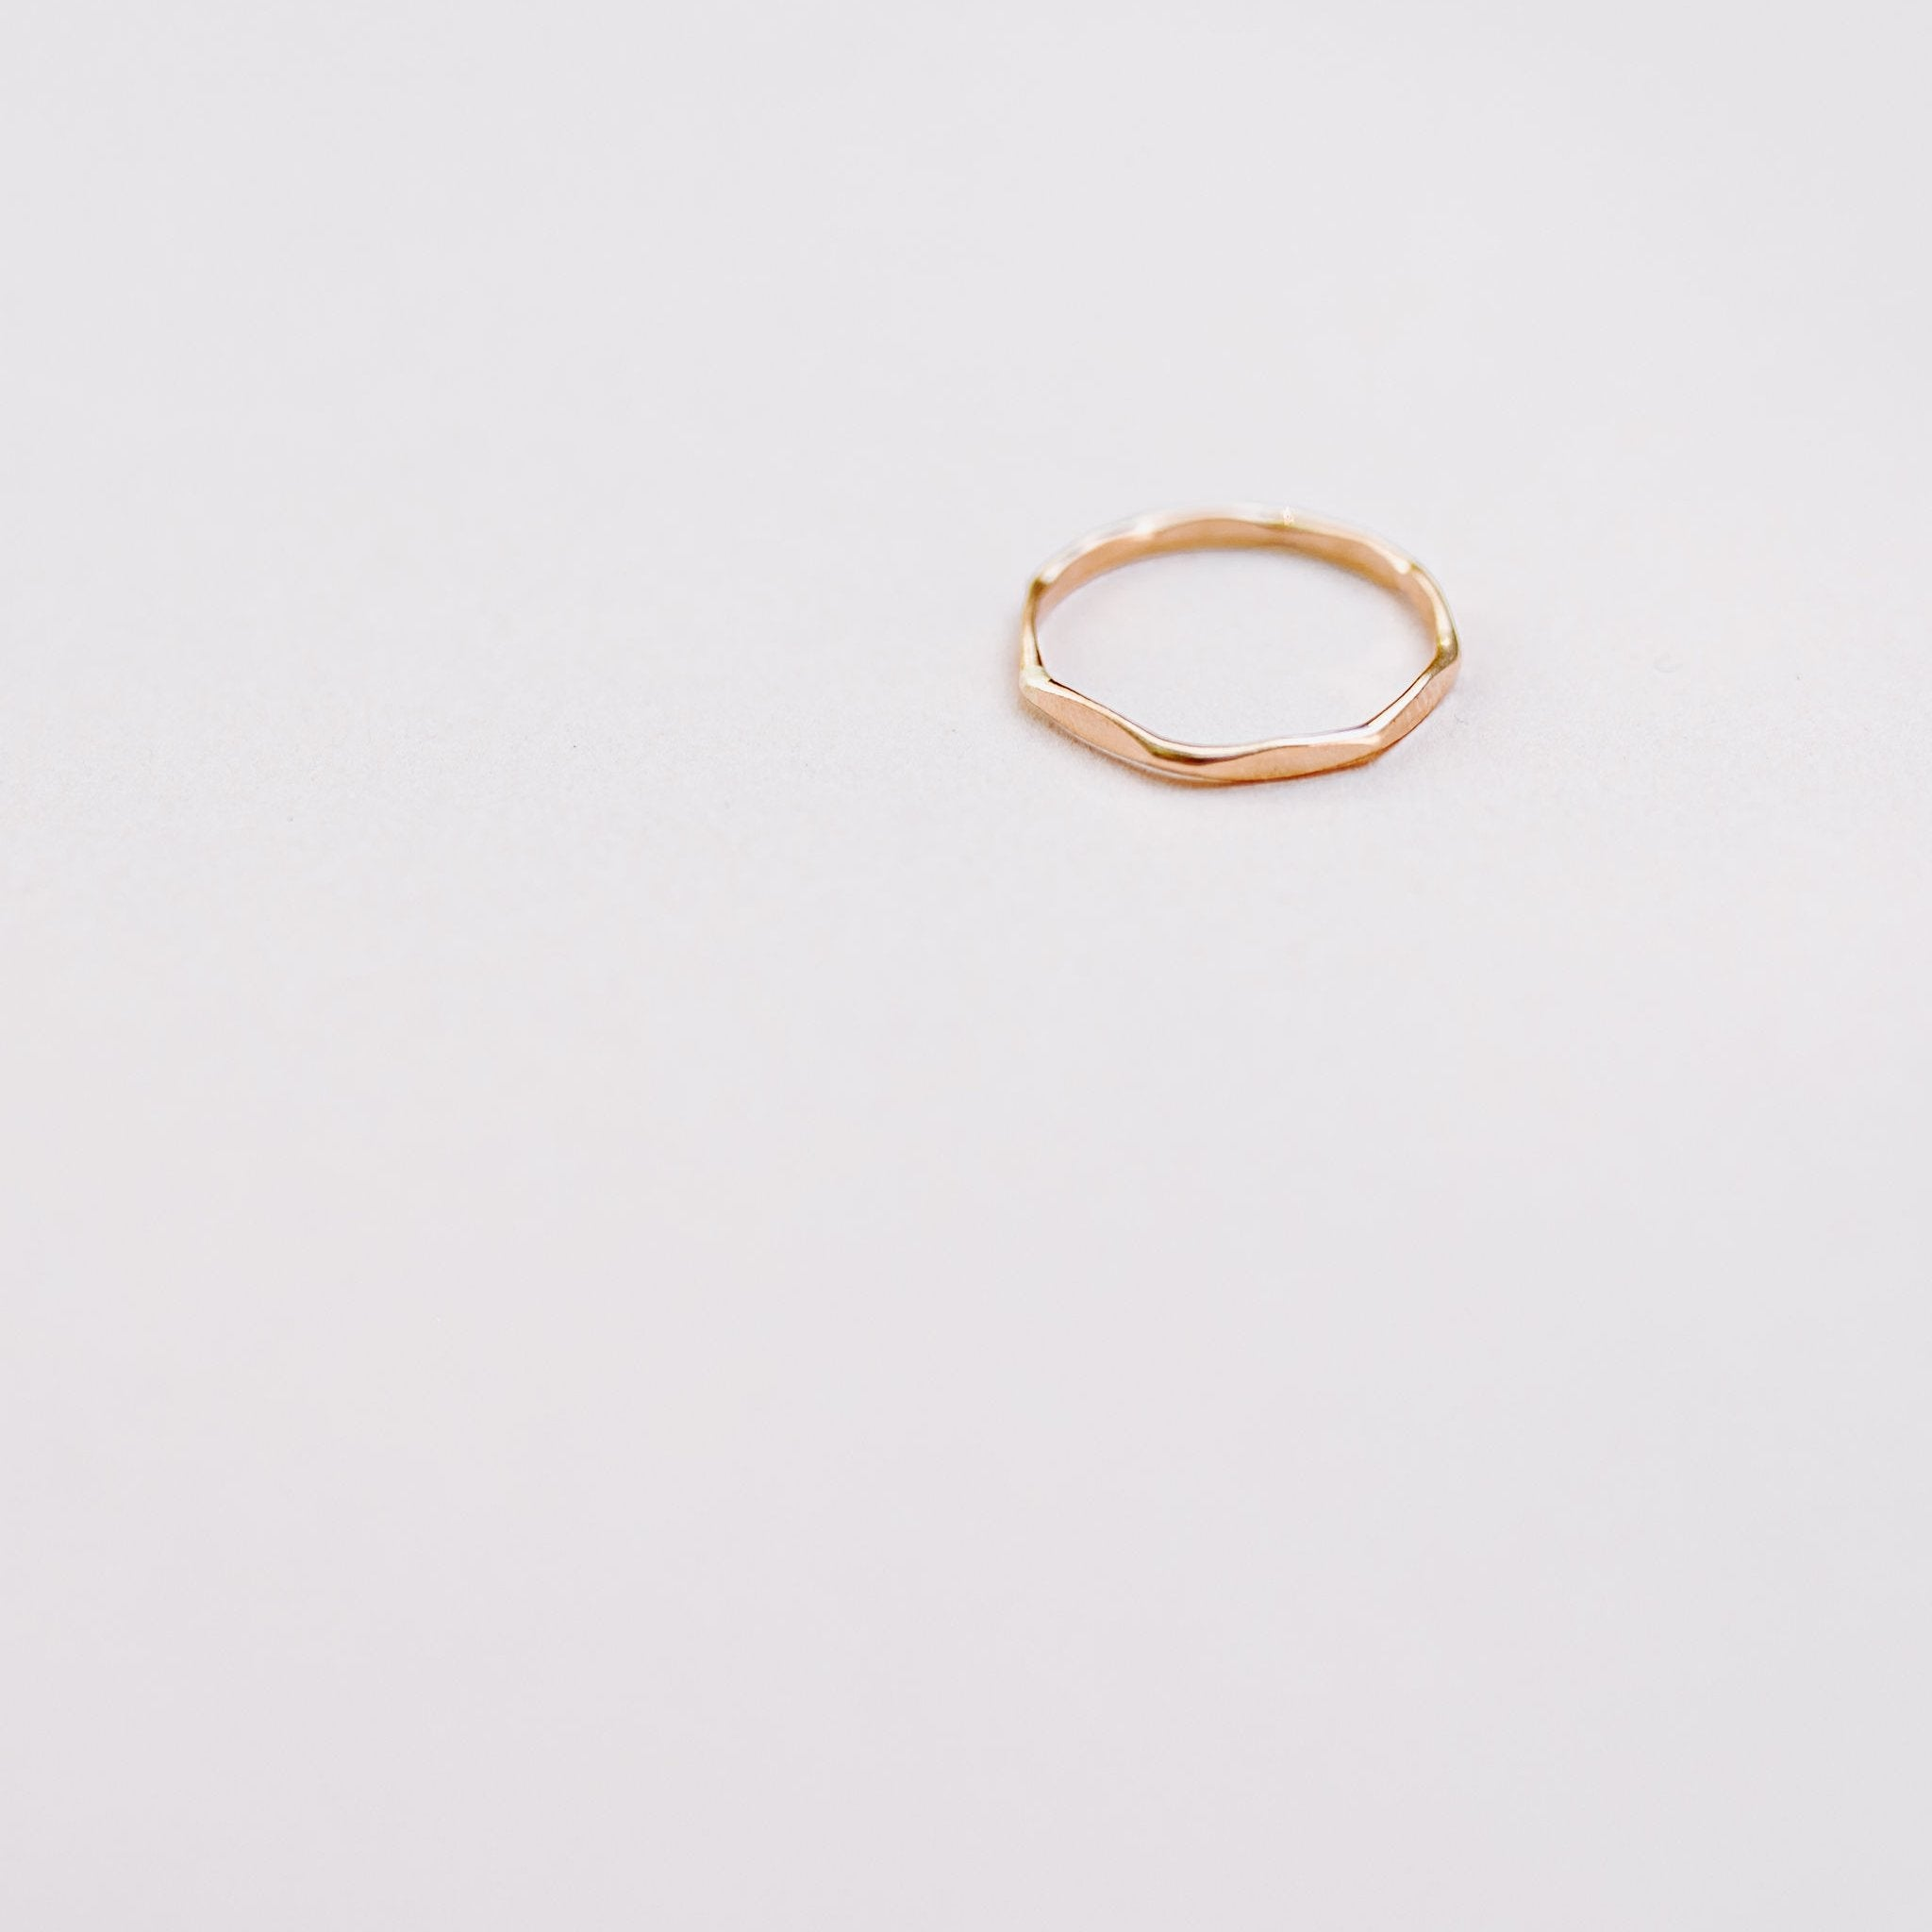 Worthy Gold Stacking Ring - Wind Blown Jewelry -Freehand Market